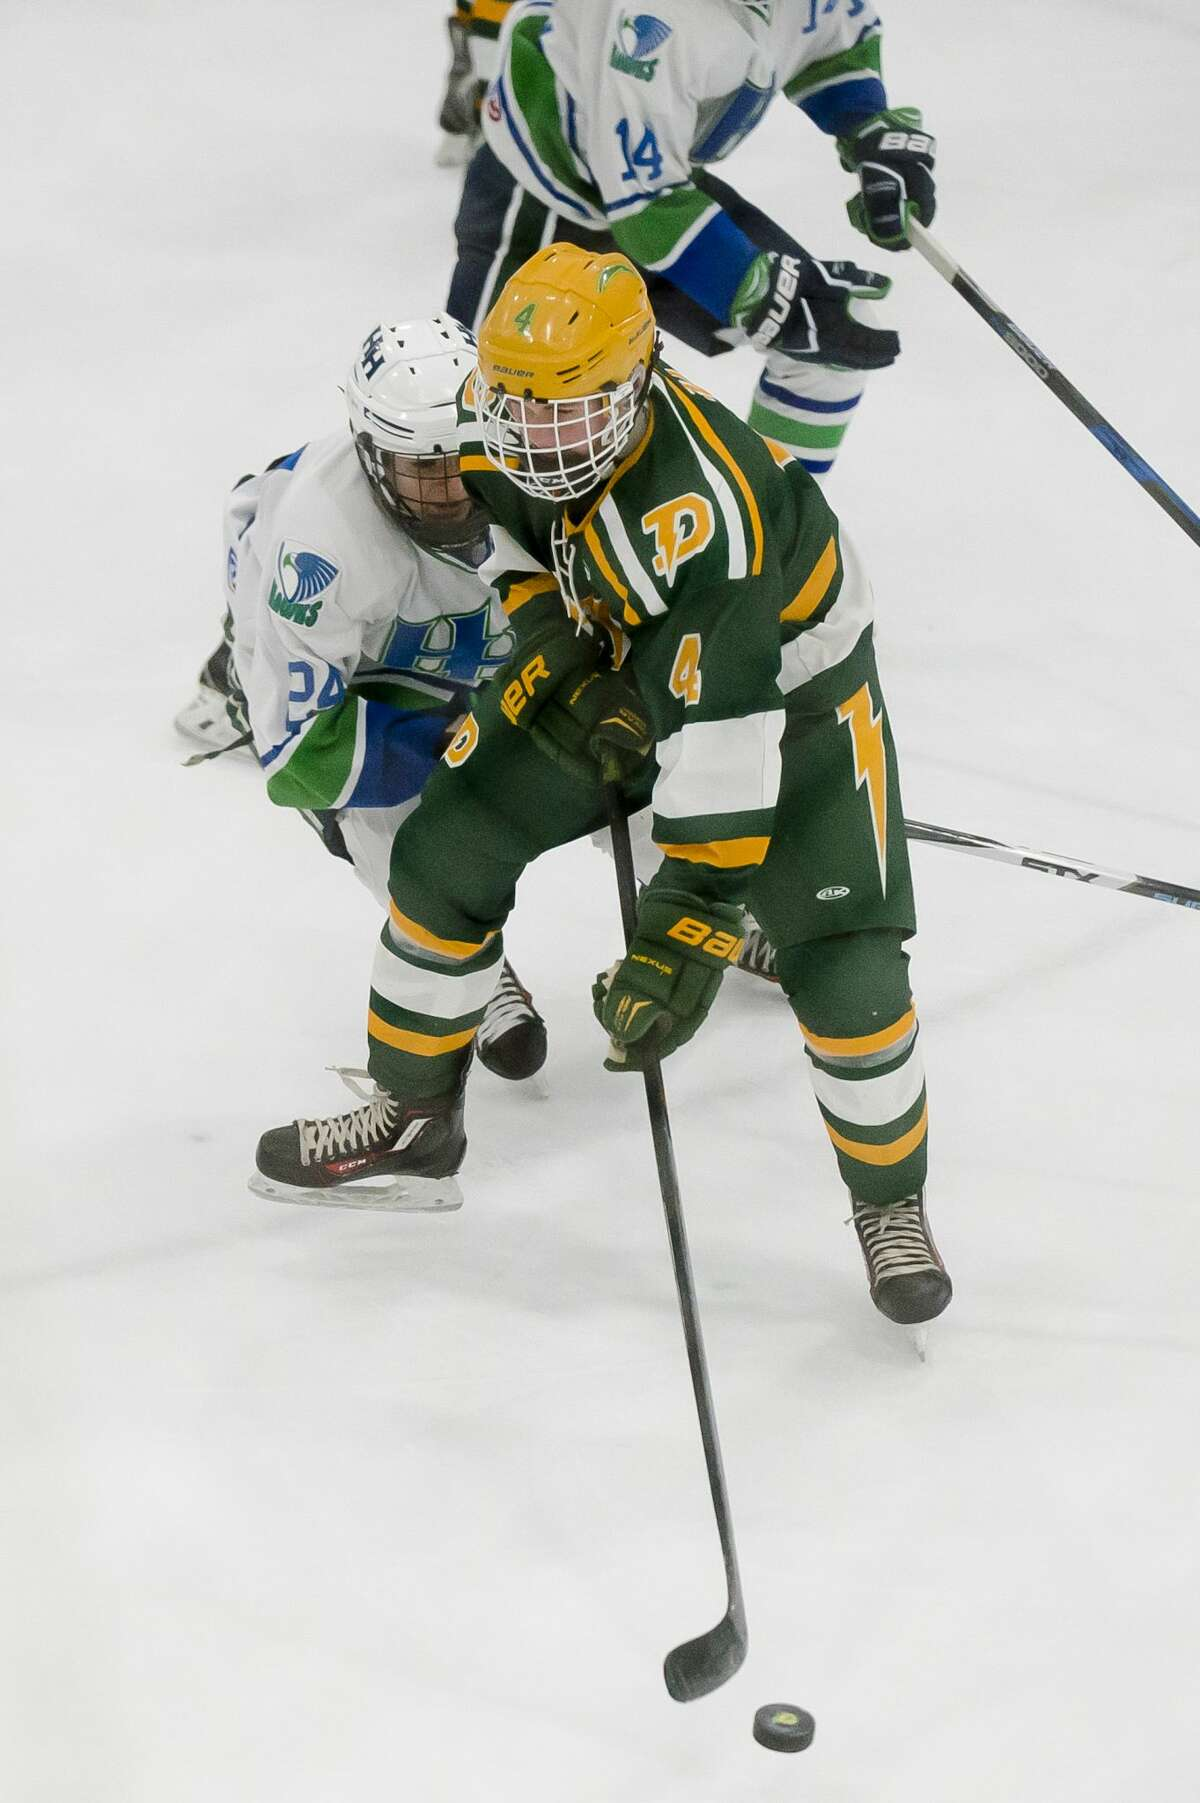 Dow sophomore Zach Seipke maintains possession during the Charger's game against Saginaw Heritage on Monday, Dec. 18, 2017 at Midland Civic Arena. (Katy Kildee/kkildee@mdn.net)